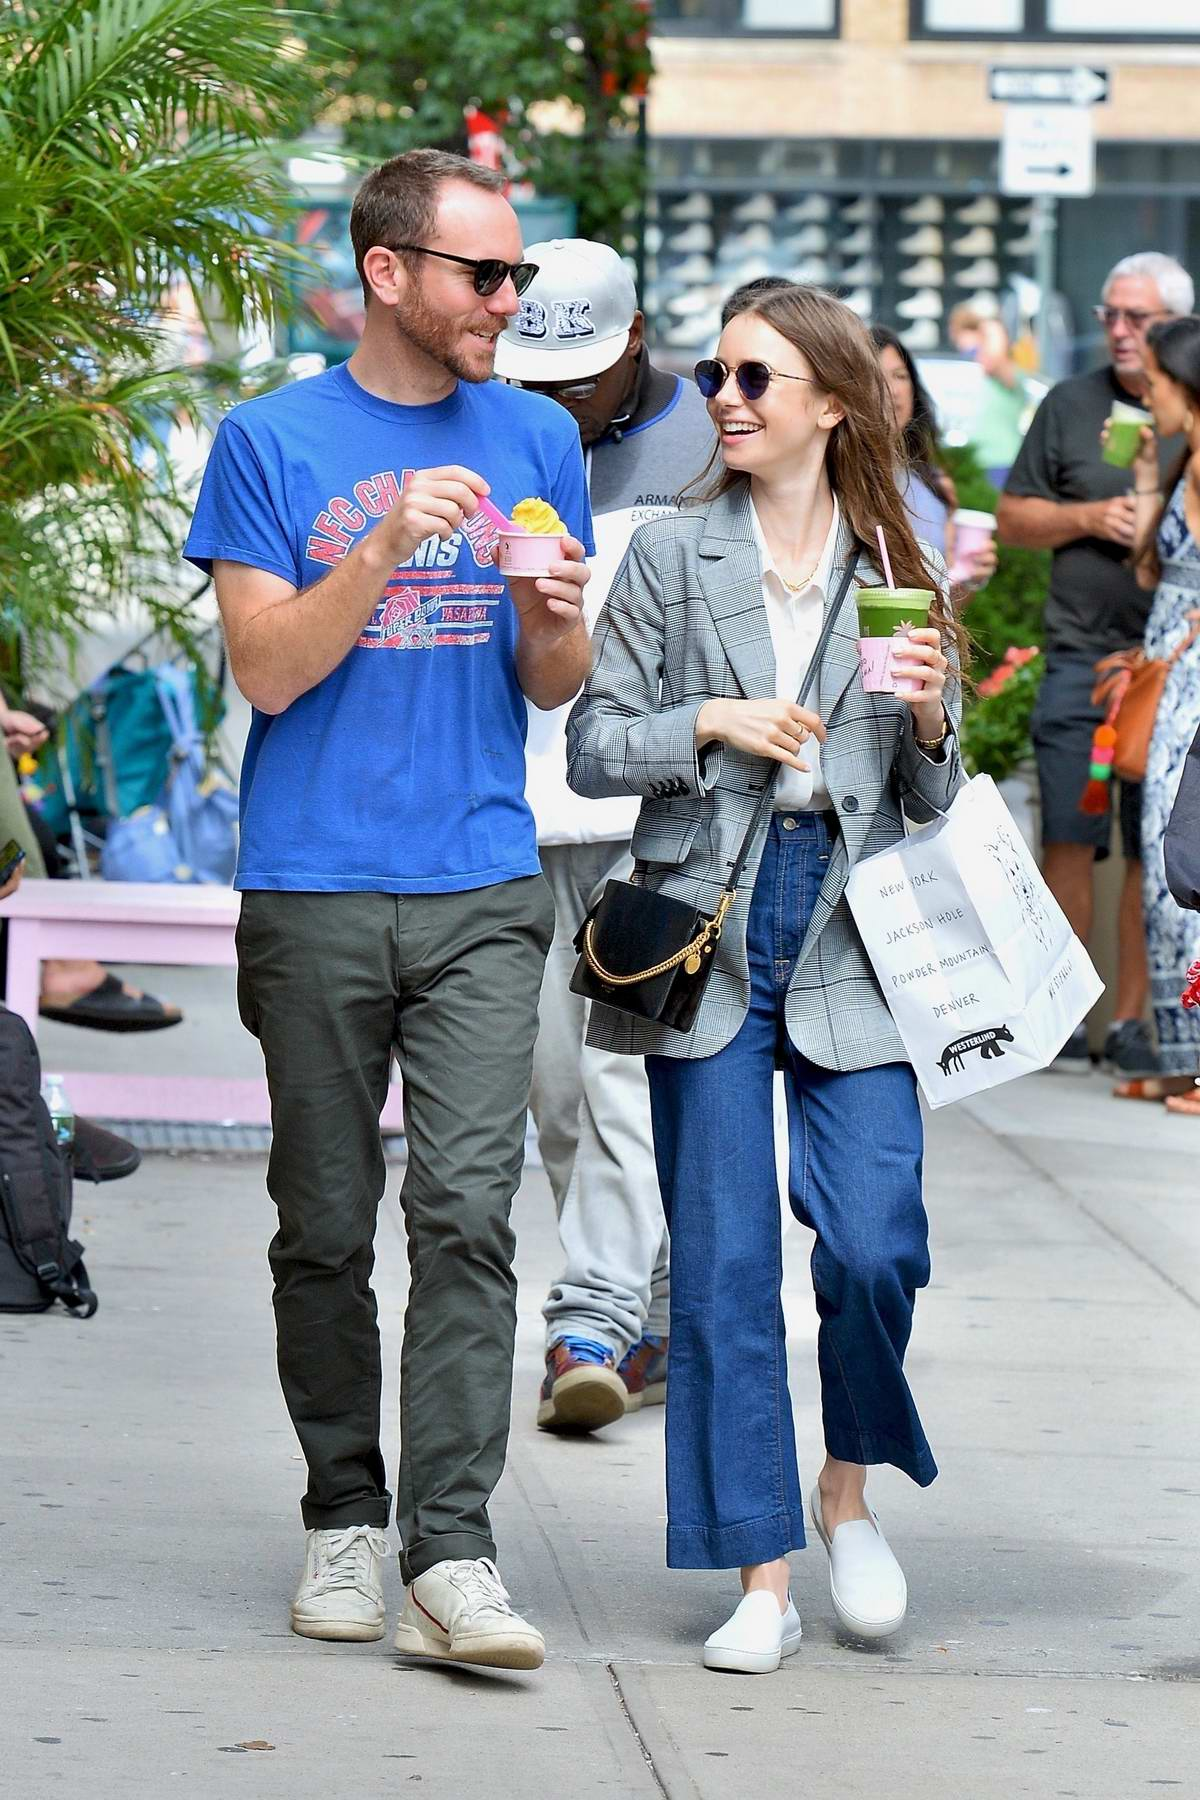 Lily Collins is all smiles while out with Charlie McDowell for some ice cream at Cha Cha Matcha in New York City